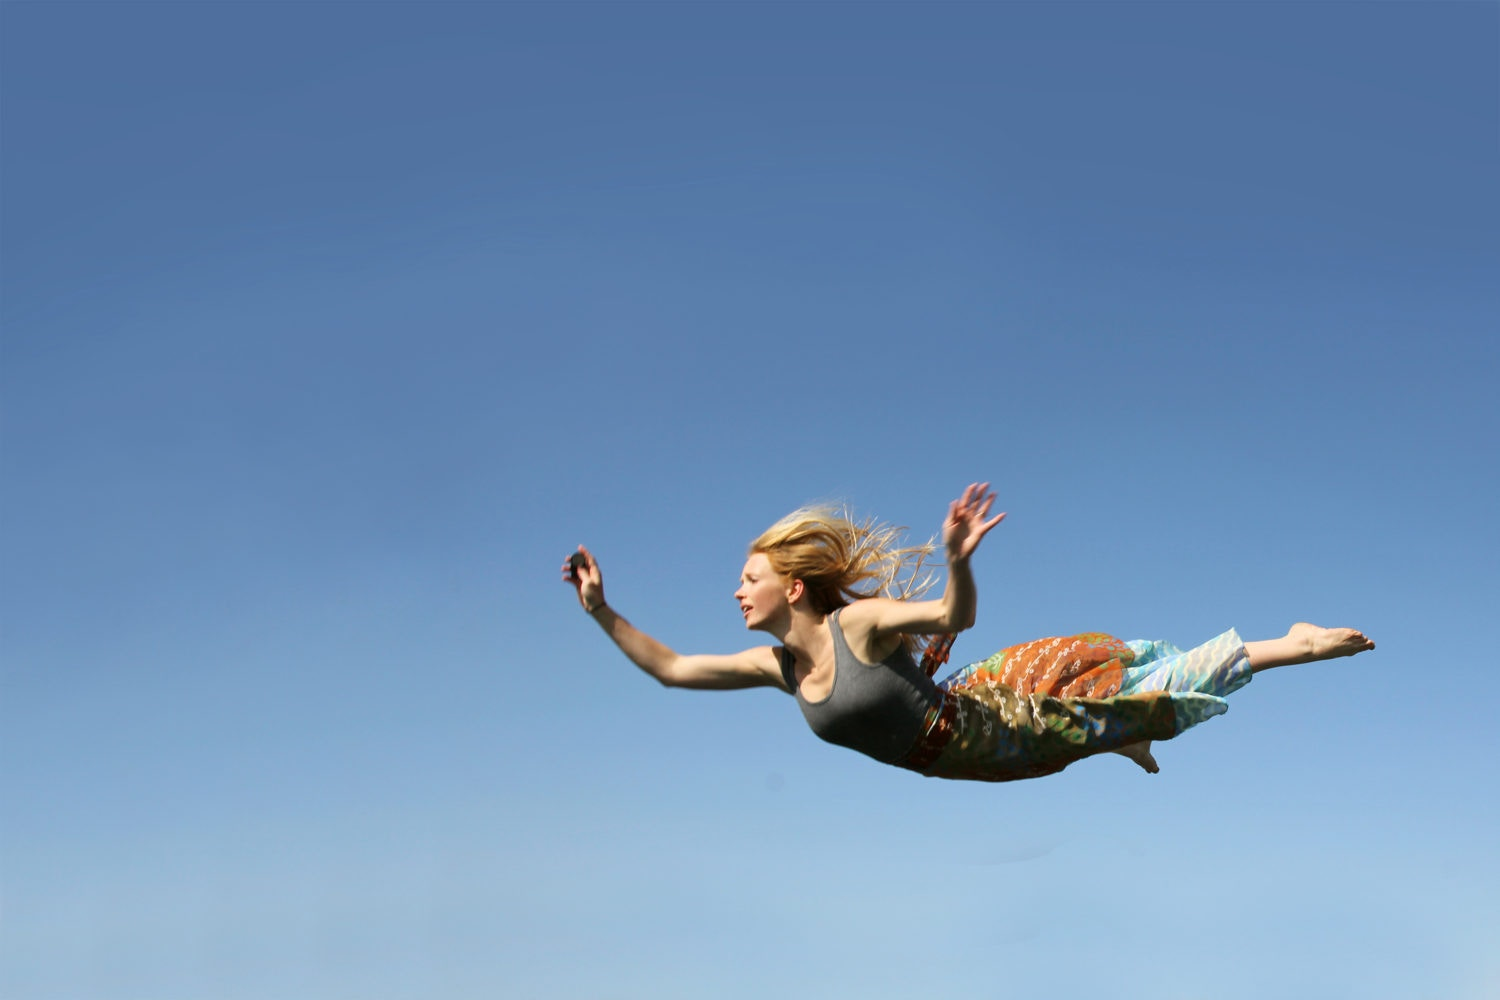 young woman with blonde hair flying or falling through the air